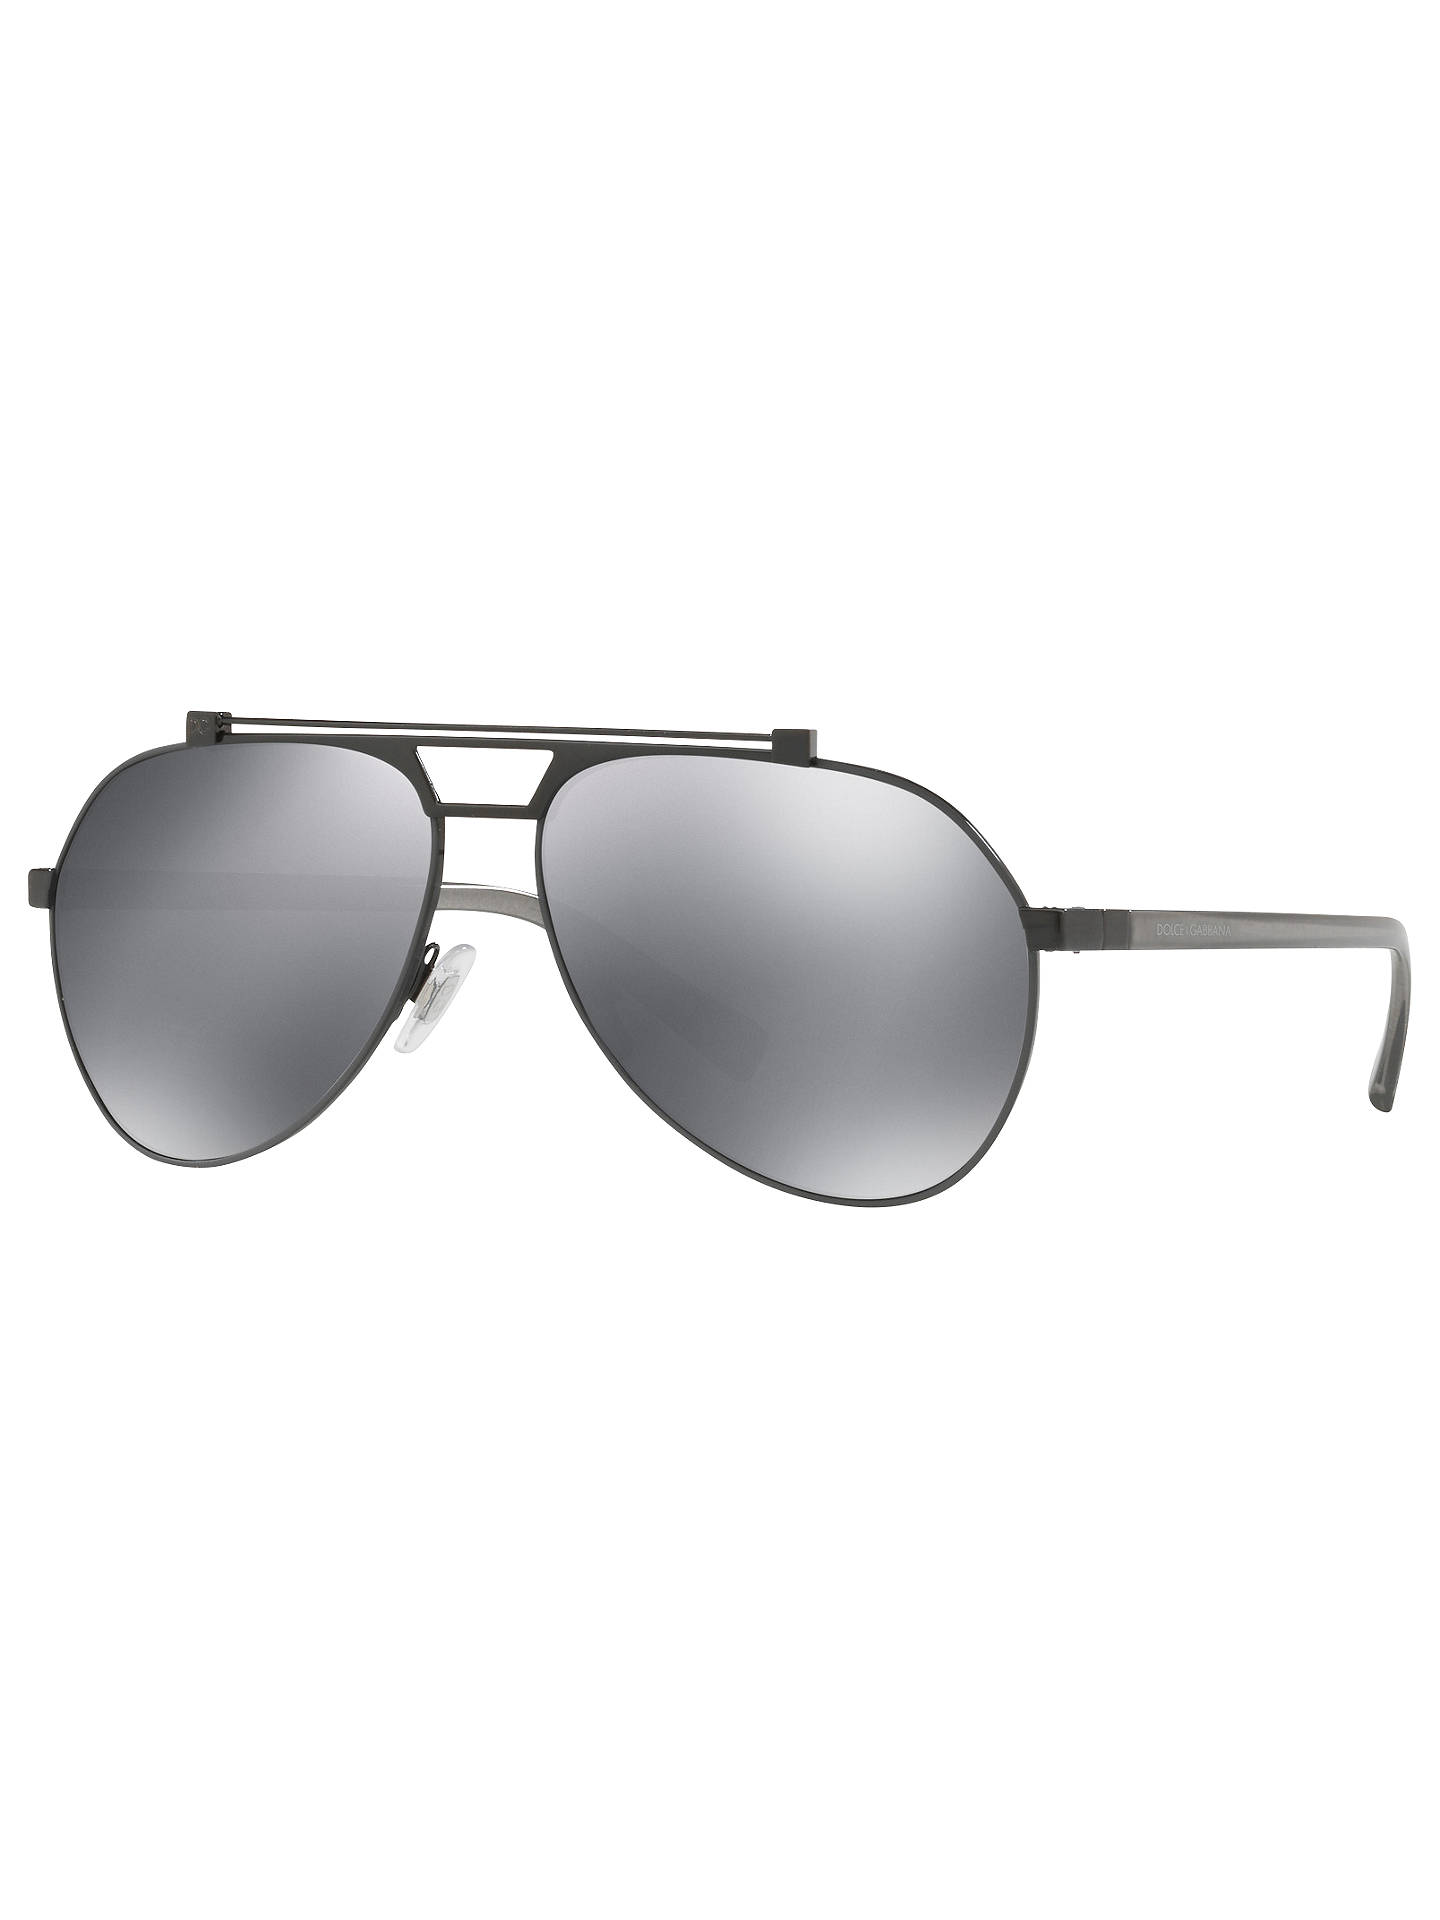 51e7bbf5154b Dolce   Gabbana DG2189 Aviator Sunglasses at John Lewis   Partners